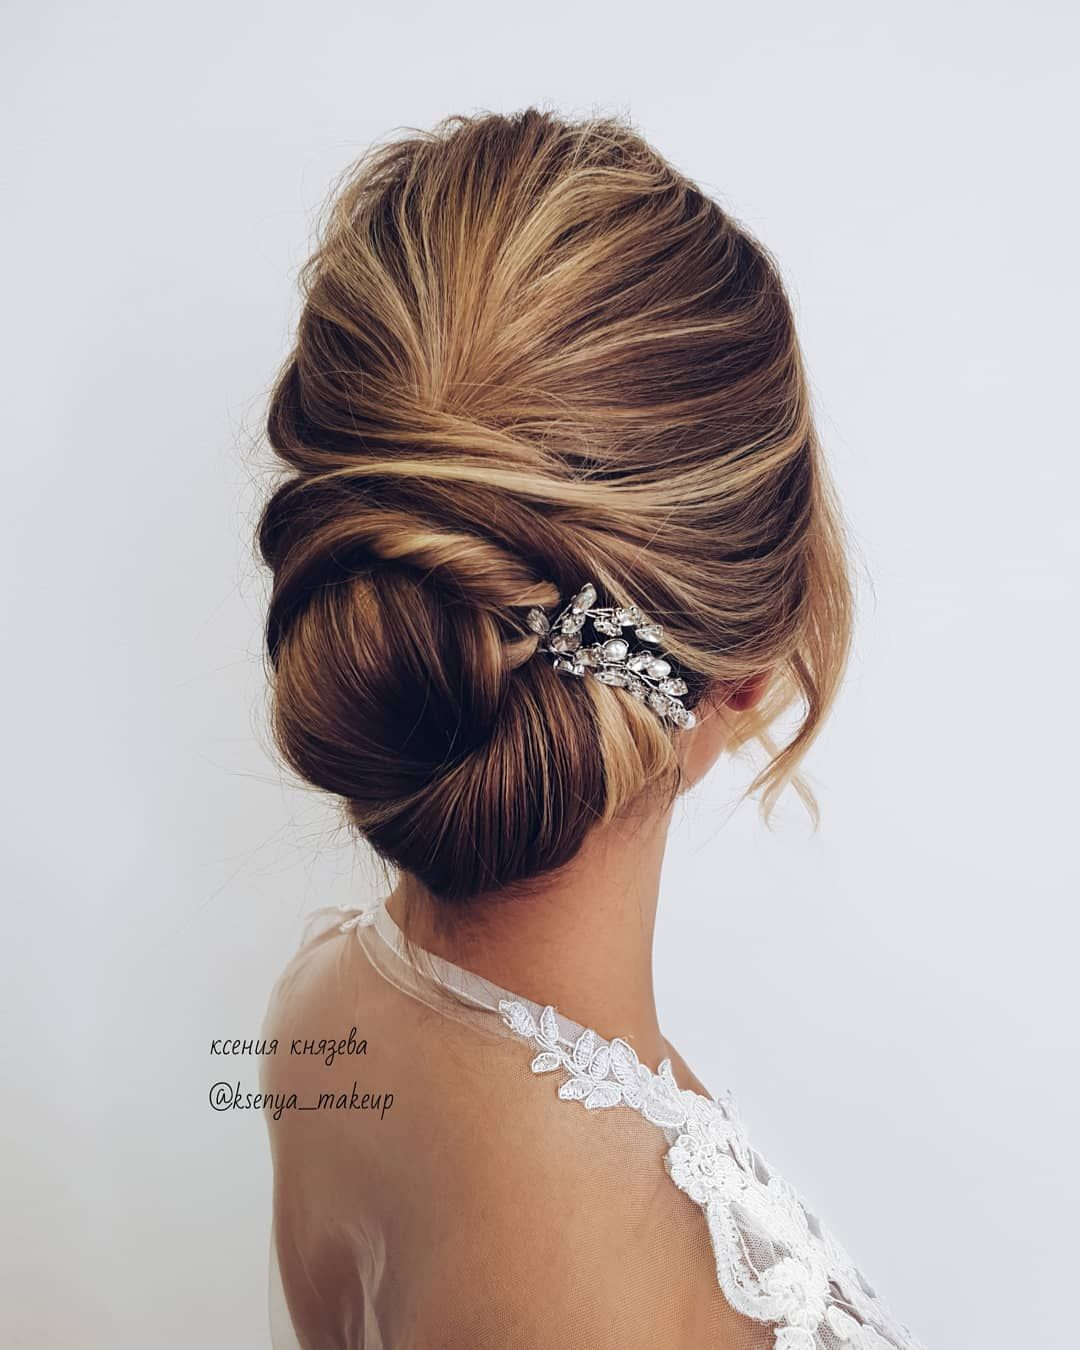 updo braided updo hairstyle,simple updo, swept back bridal hairstyle,updo hairstyles ,wedding hairstyles #weddinghair #hairstyles #updo #hairupstyle #chignon #braids #simplebun